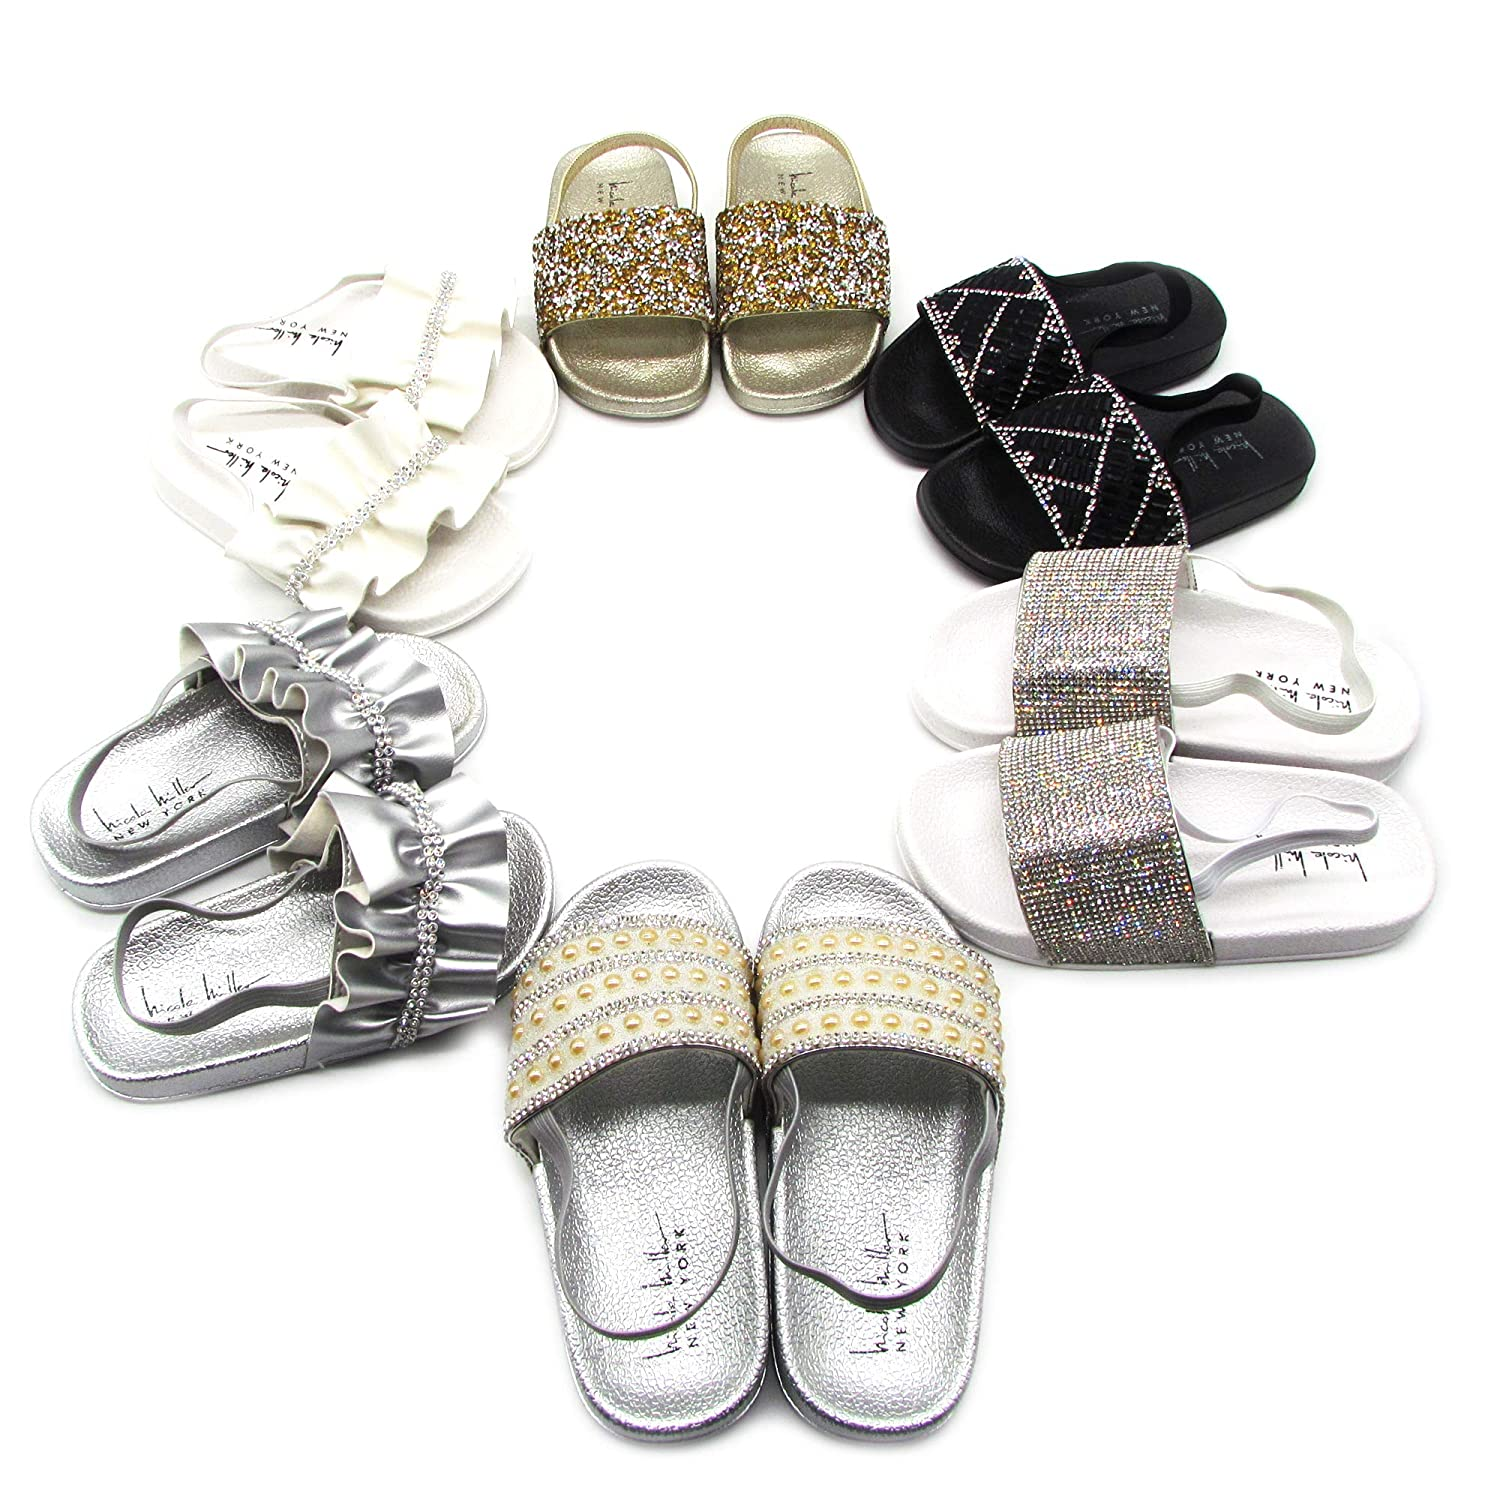 Toddler Nicole Miller New York Toddler Girls Jeweled Slide Sandal